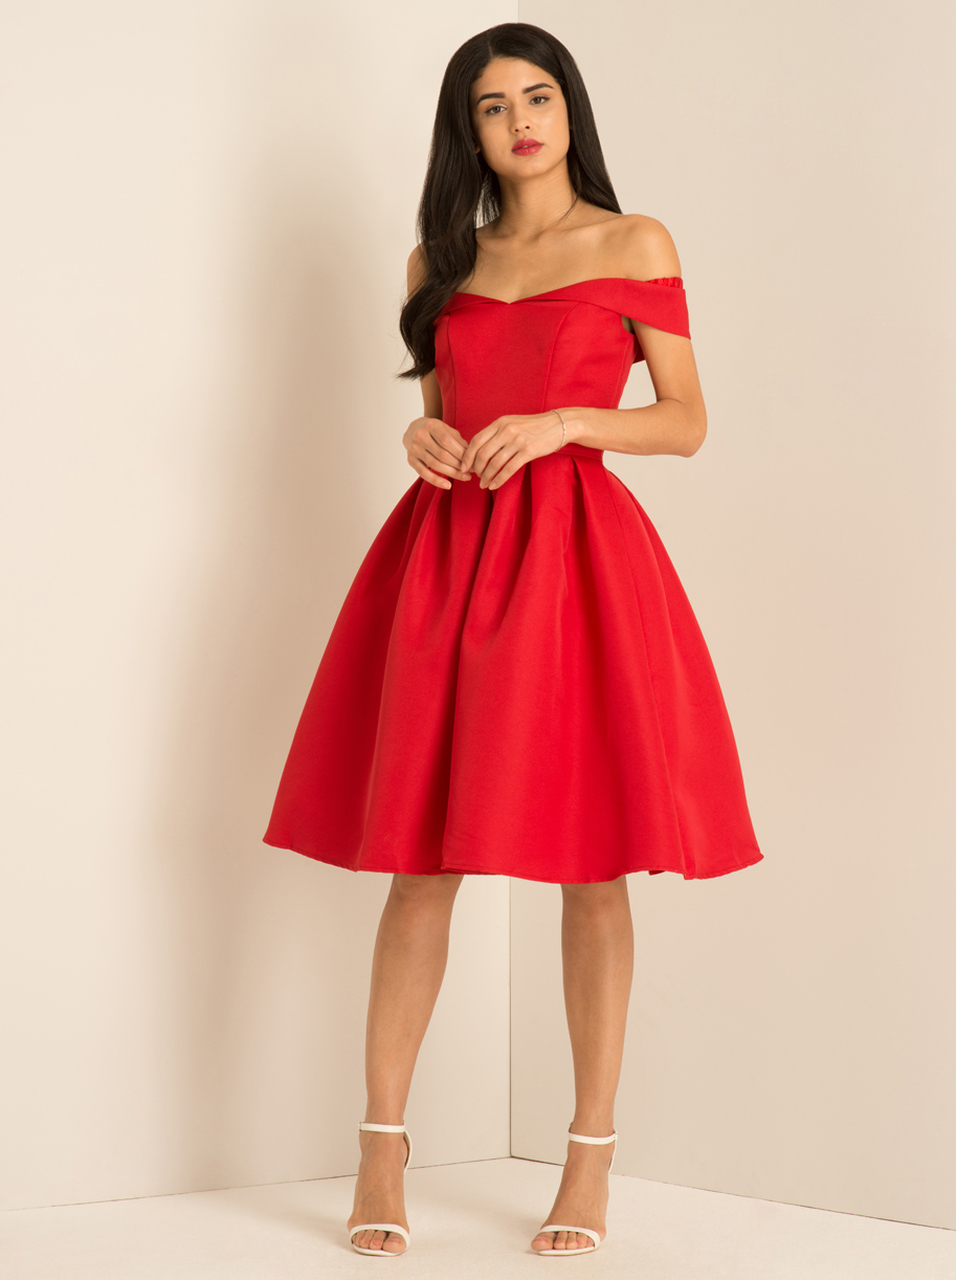 Valentines-party-outfit-ideas-13